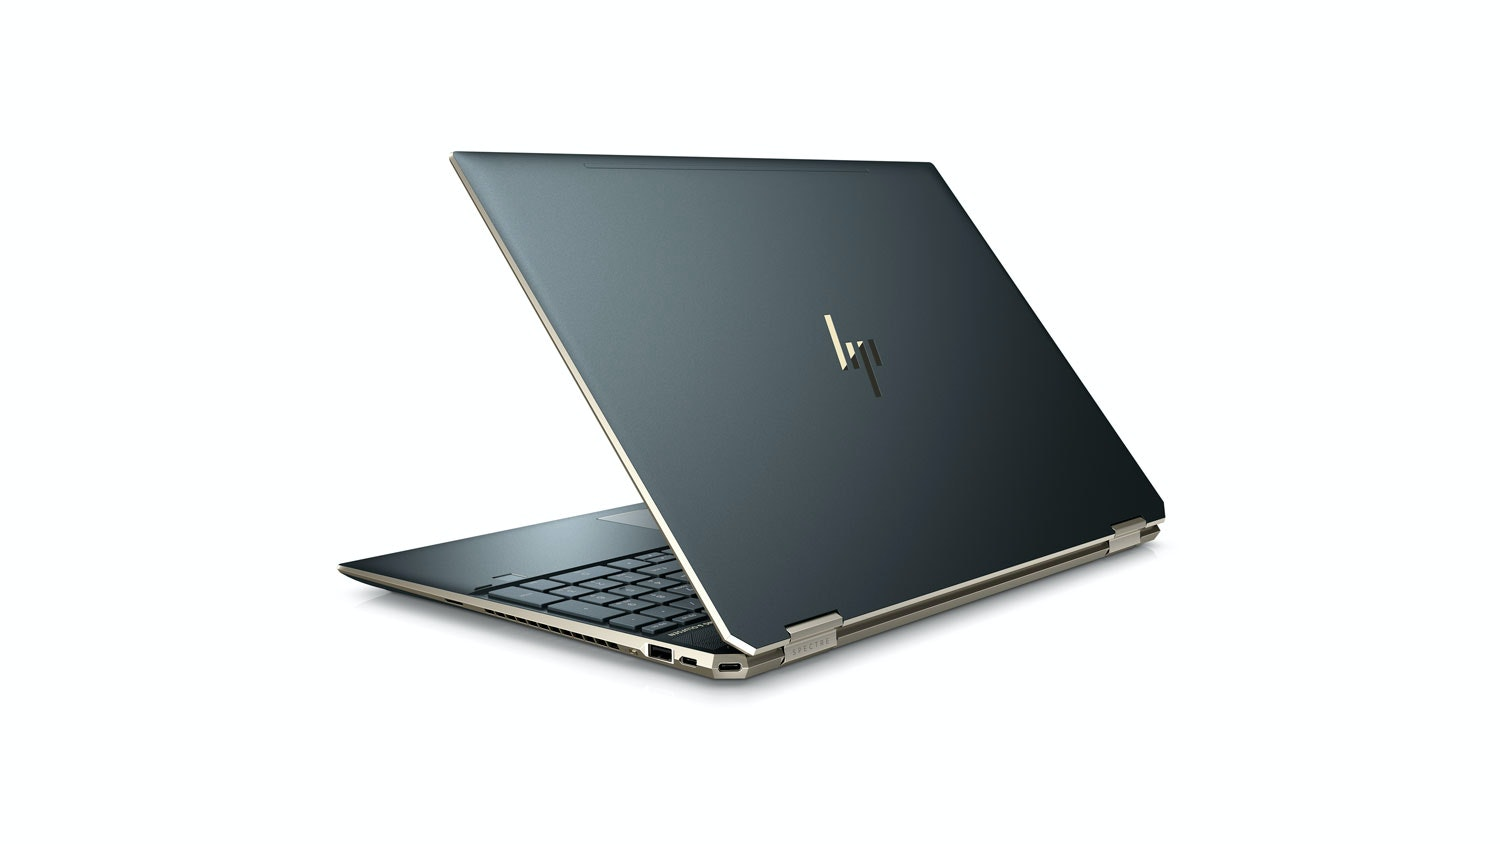 HP Spectre x360 15-DF0012TX 2-in-1 Laptop - Back